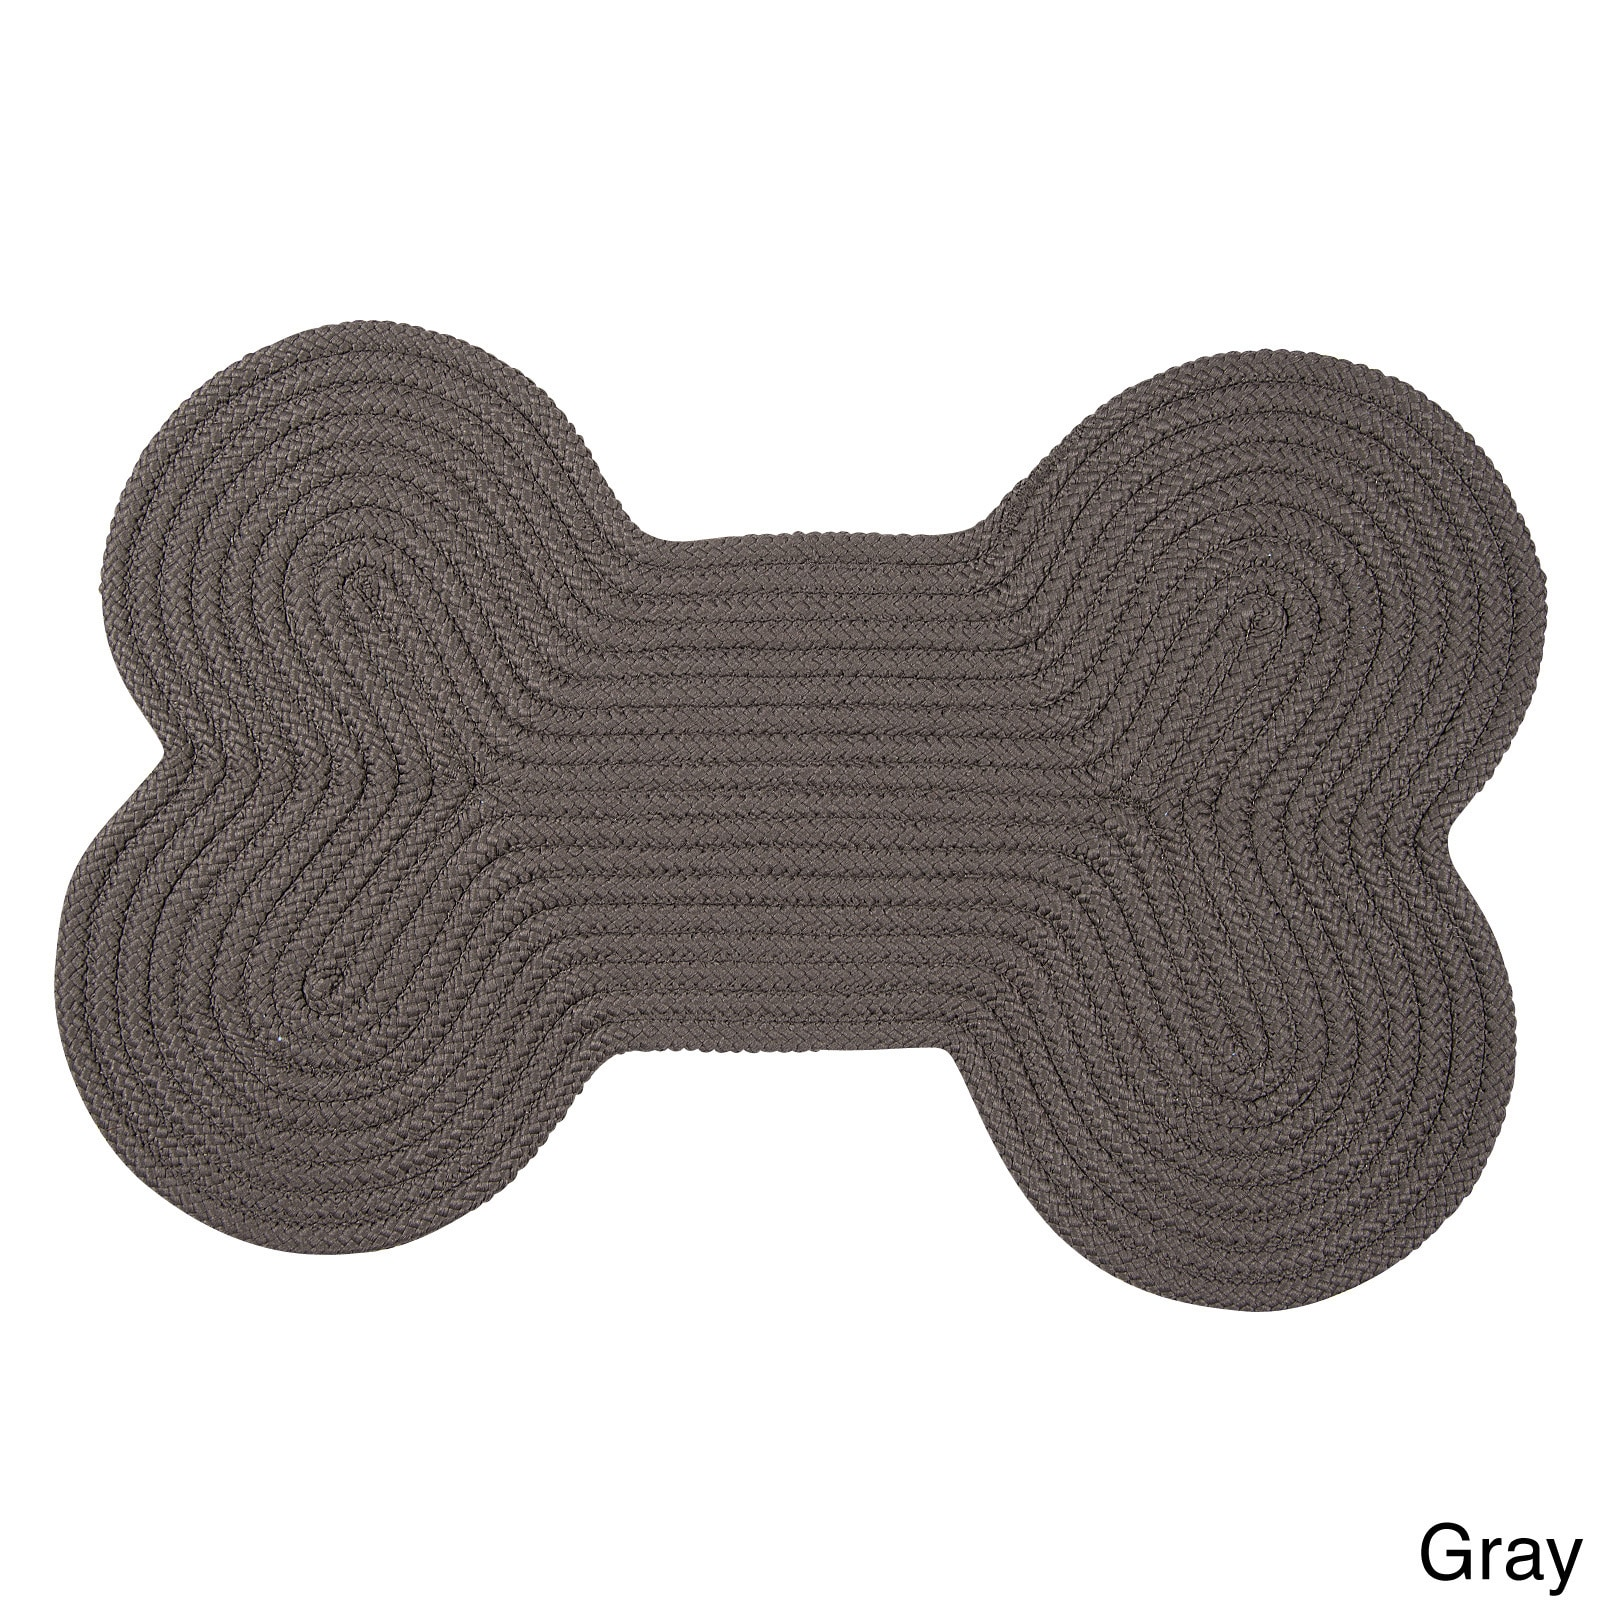 Dog Bone Pet Rug: Doggy Days Reversible Braided Dog Bone Rug